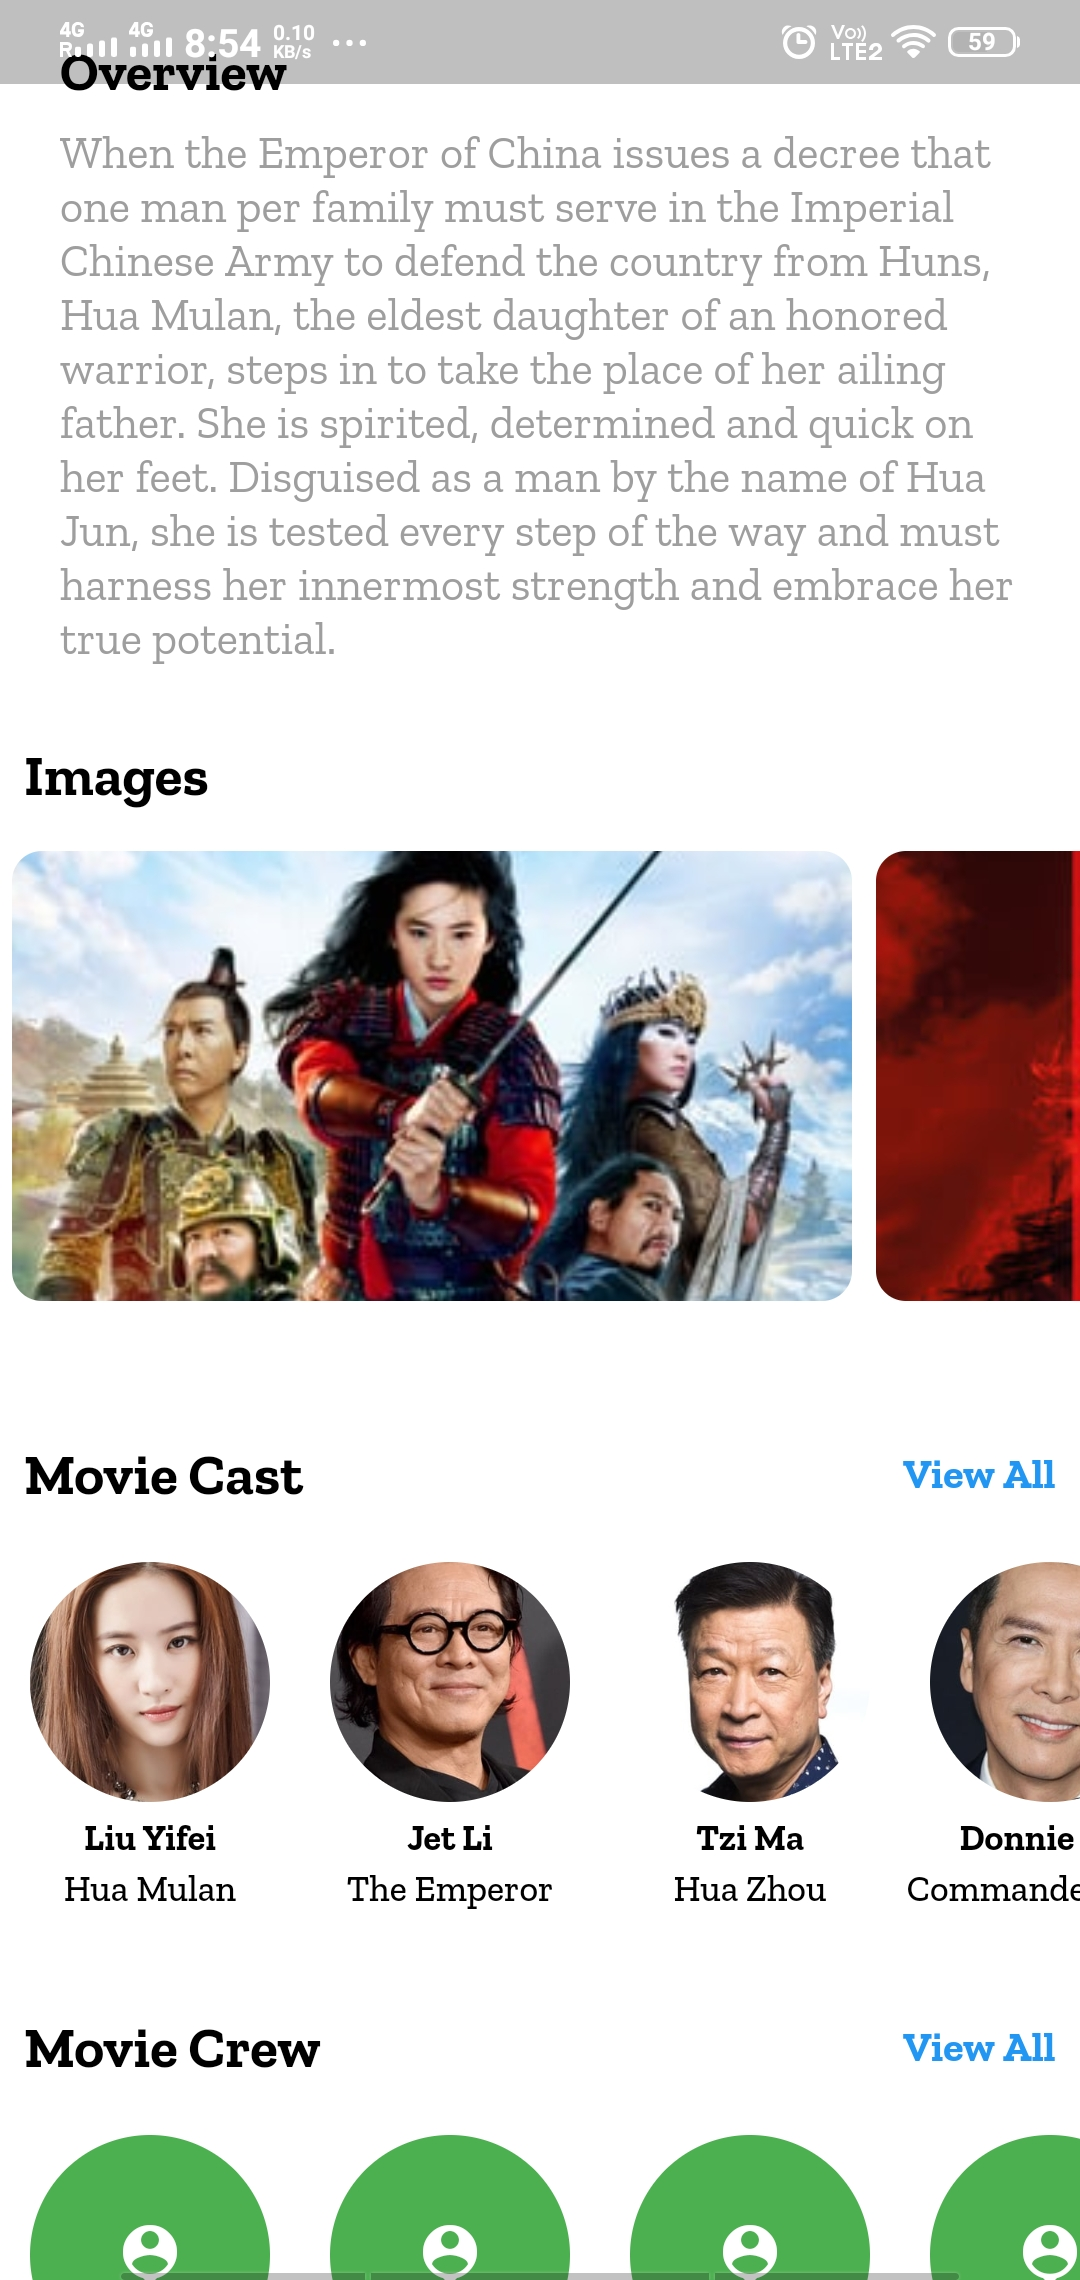 A fetch latest upcomming movies app with flutter